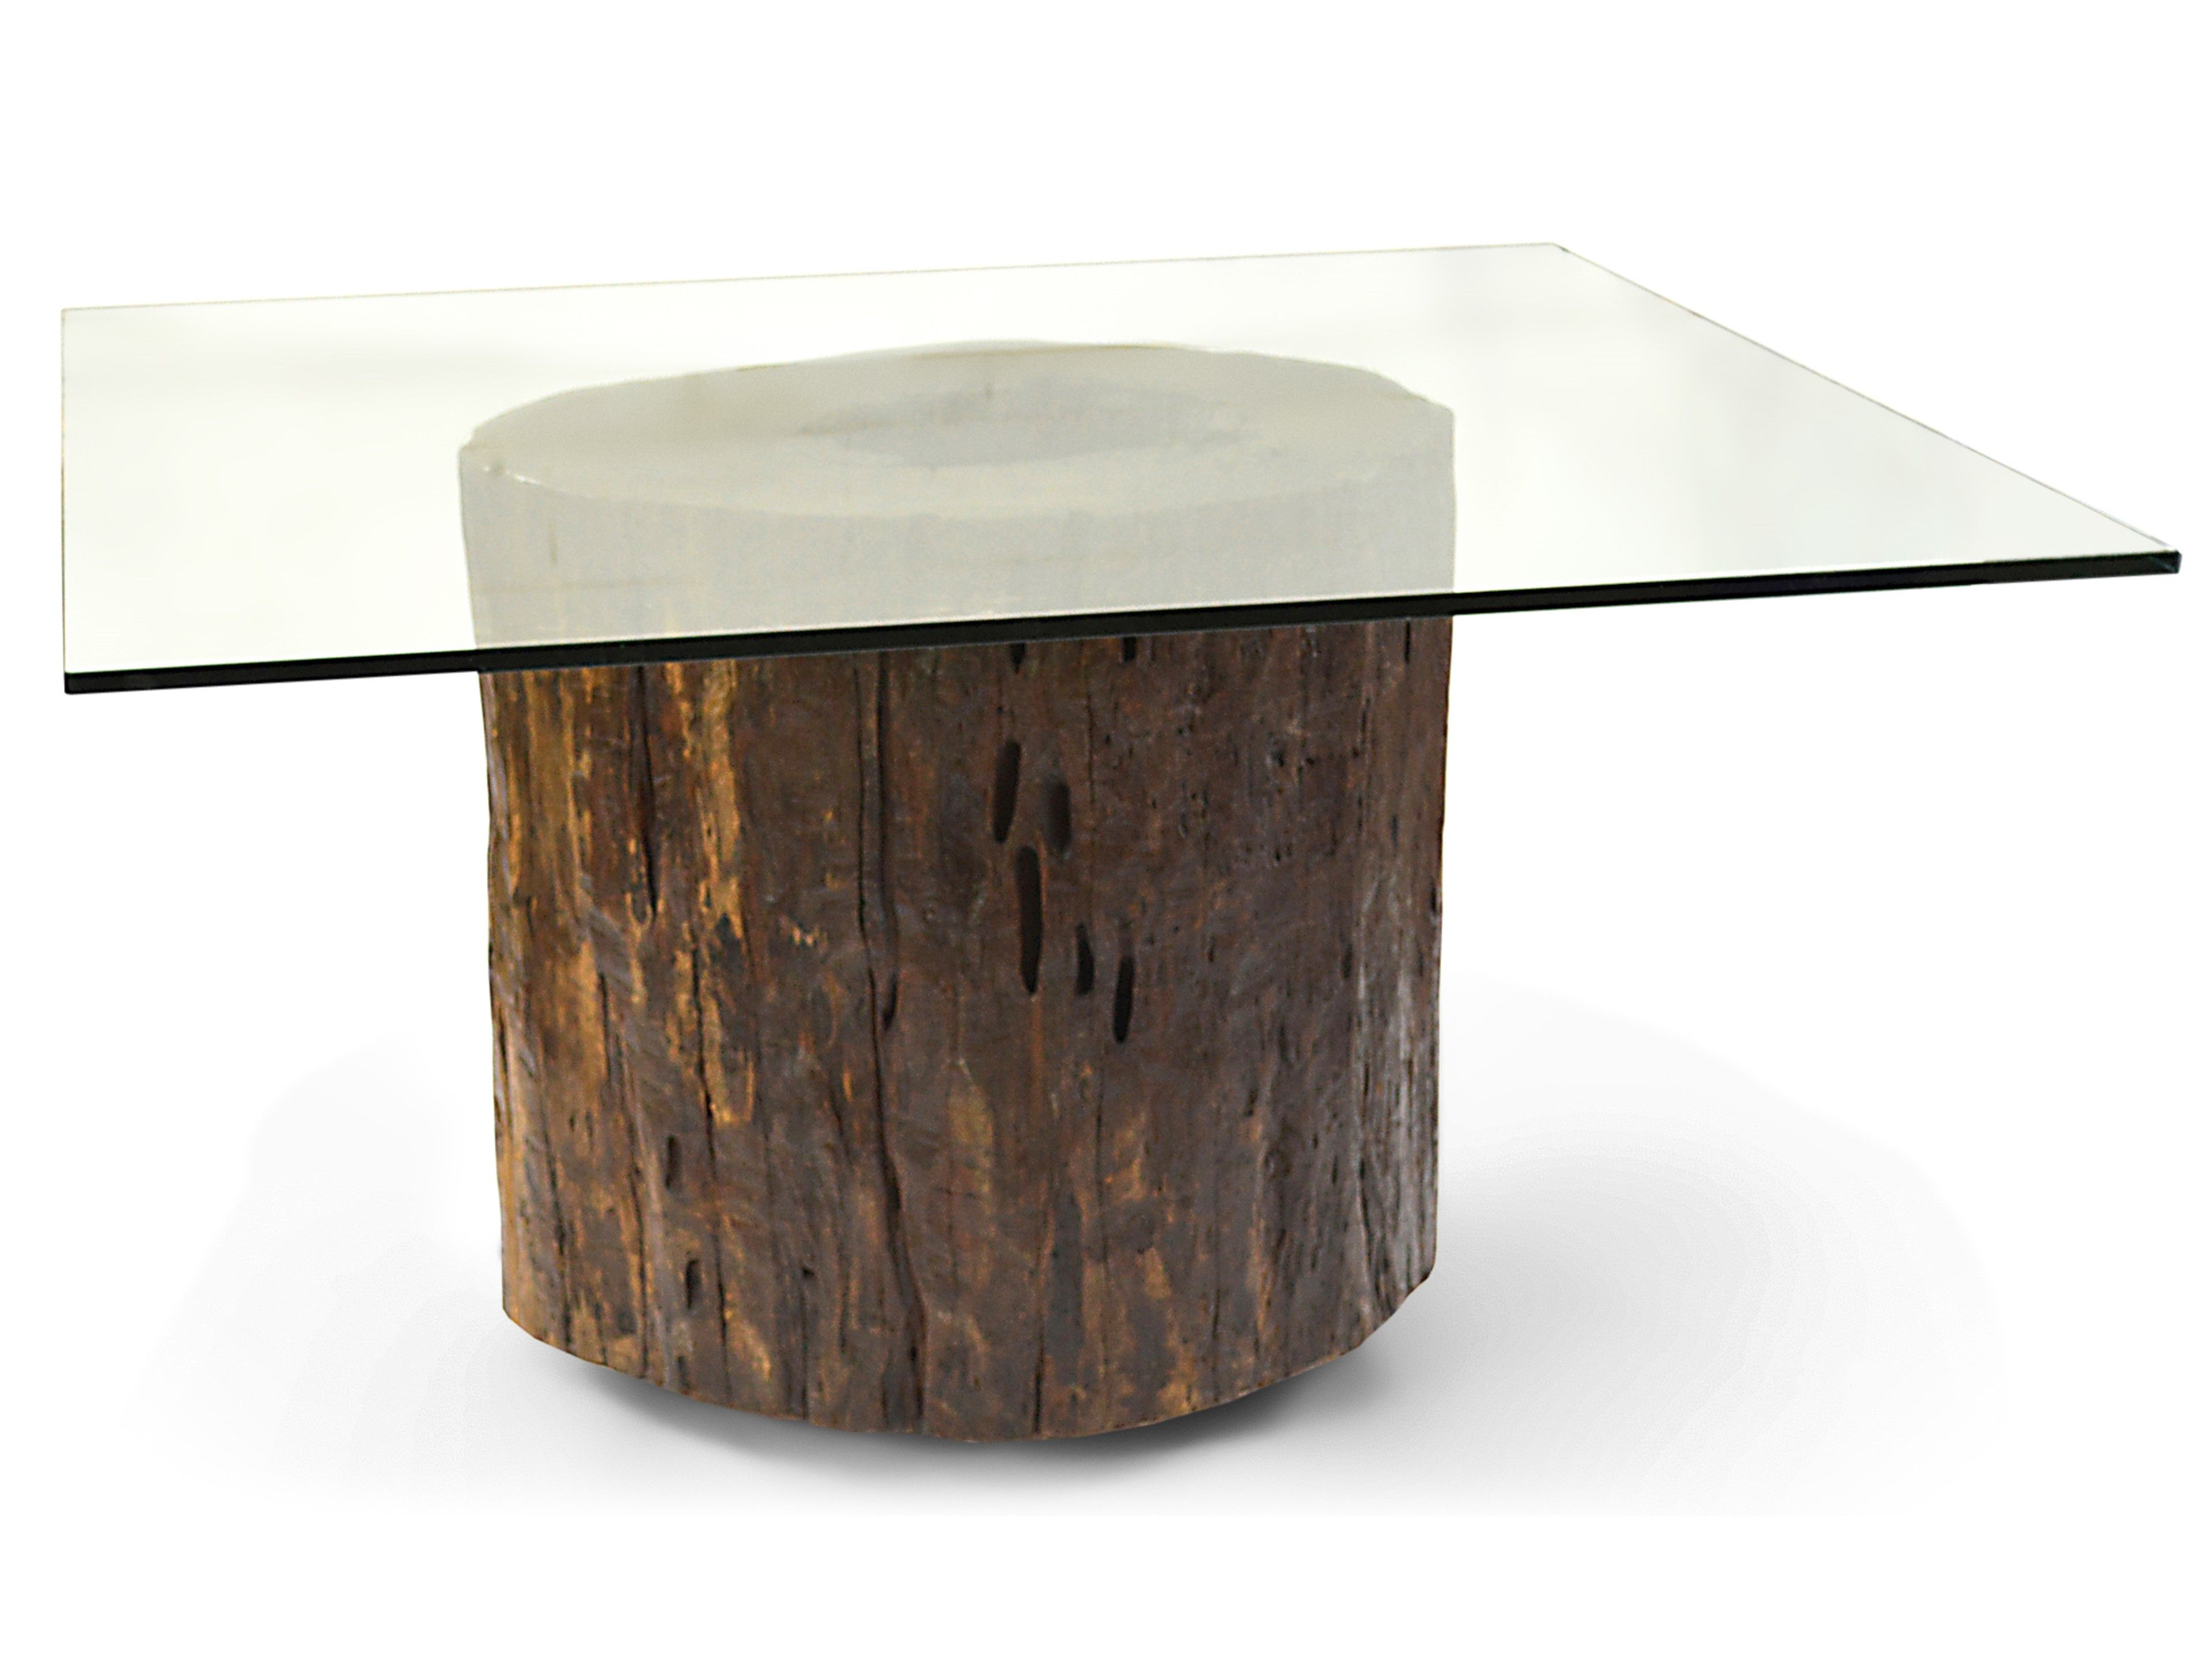 Elegant Glass Top Mussutaiba Tree Trunk Dining Table Rotsen.JPG (3840×2880)